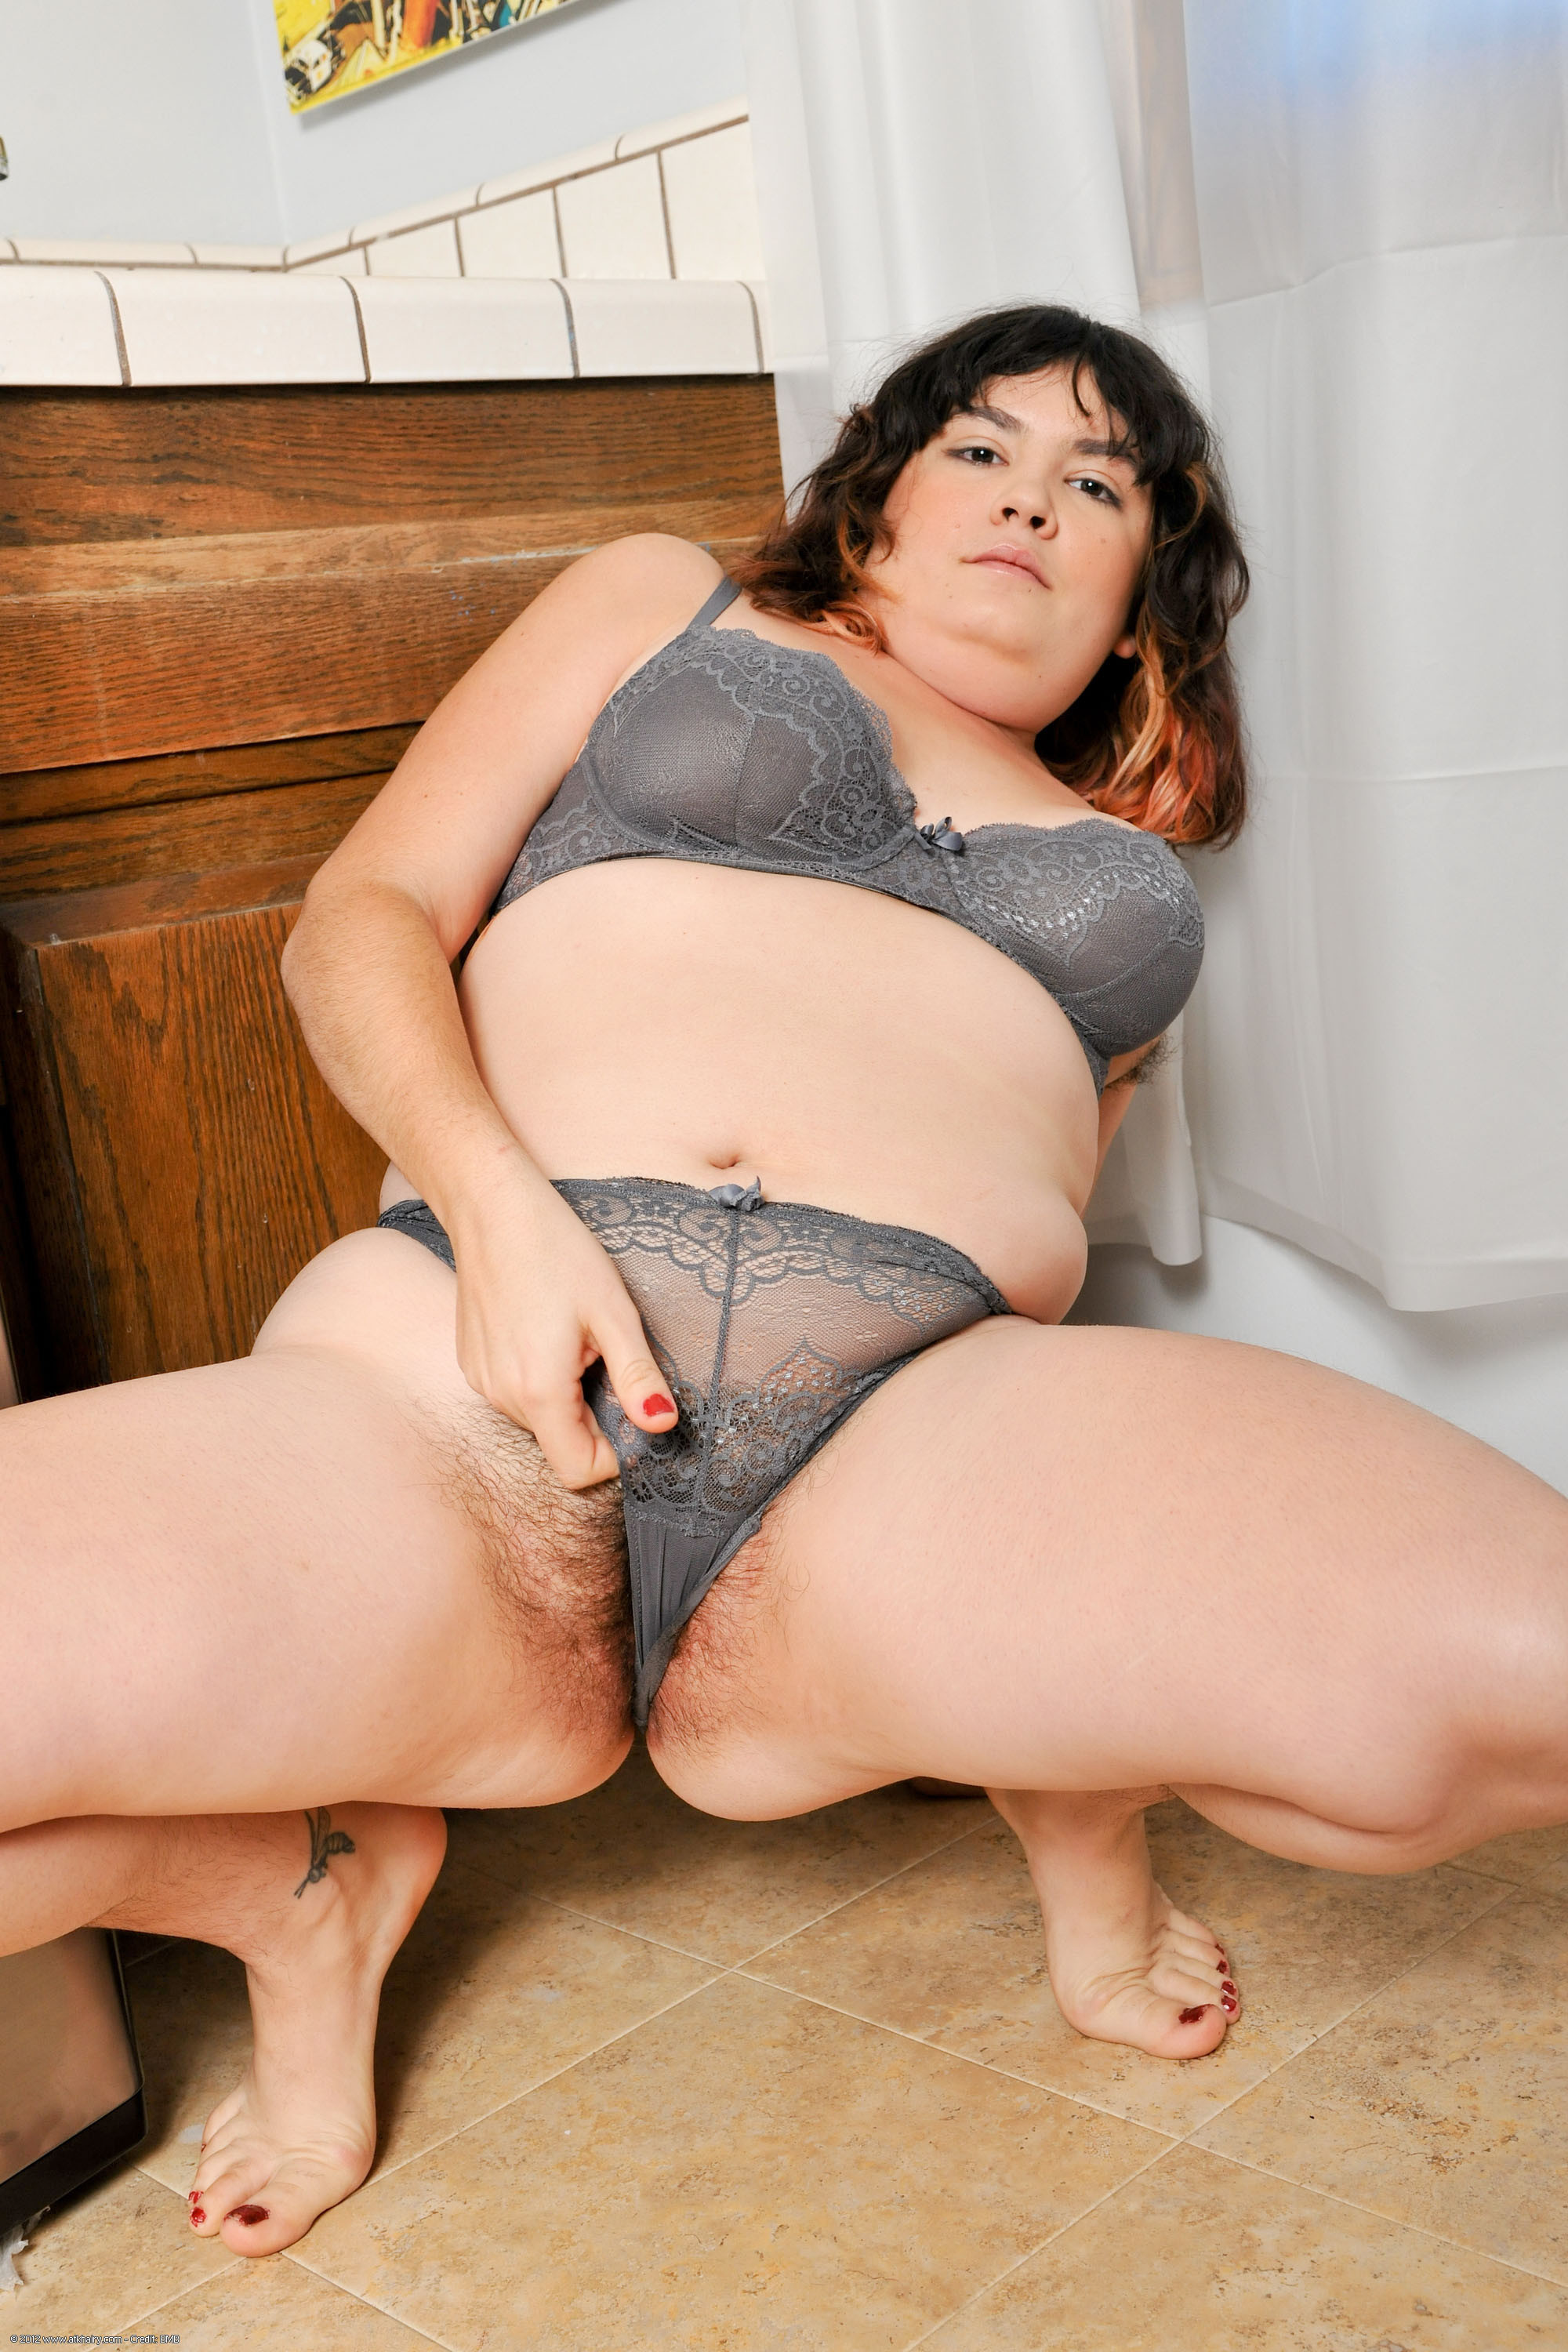 Free wet pussy in thongs xxx image hot